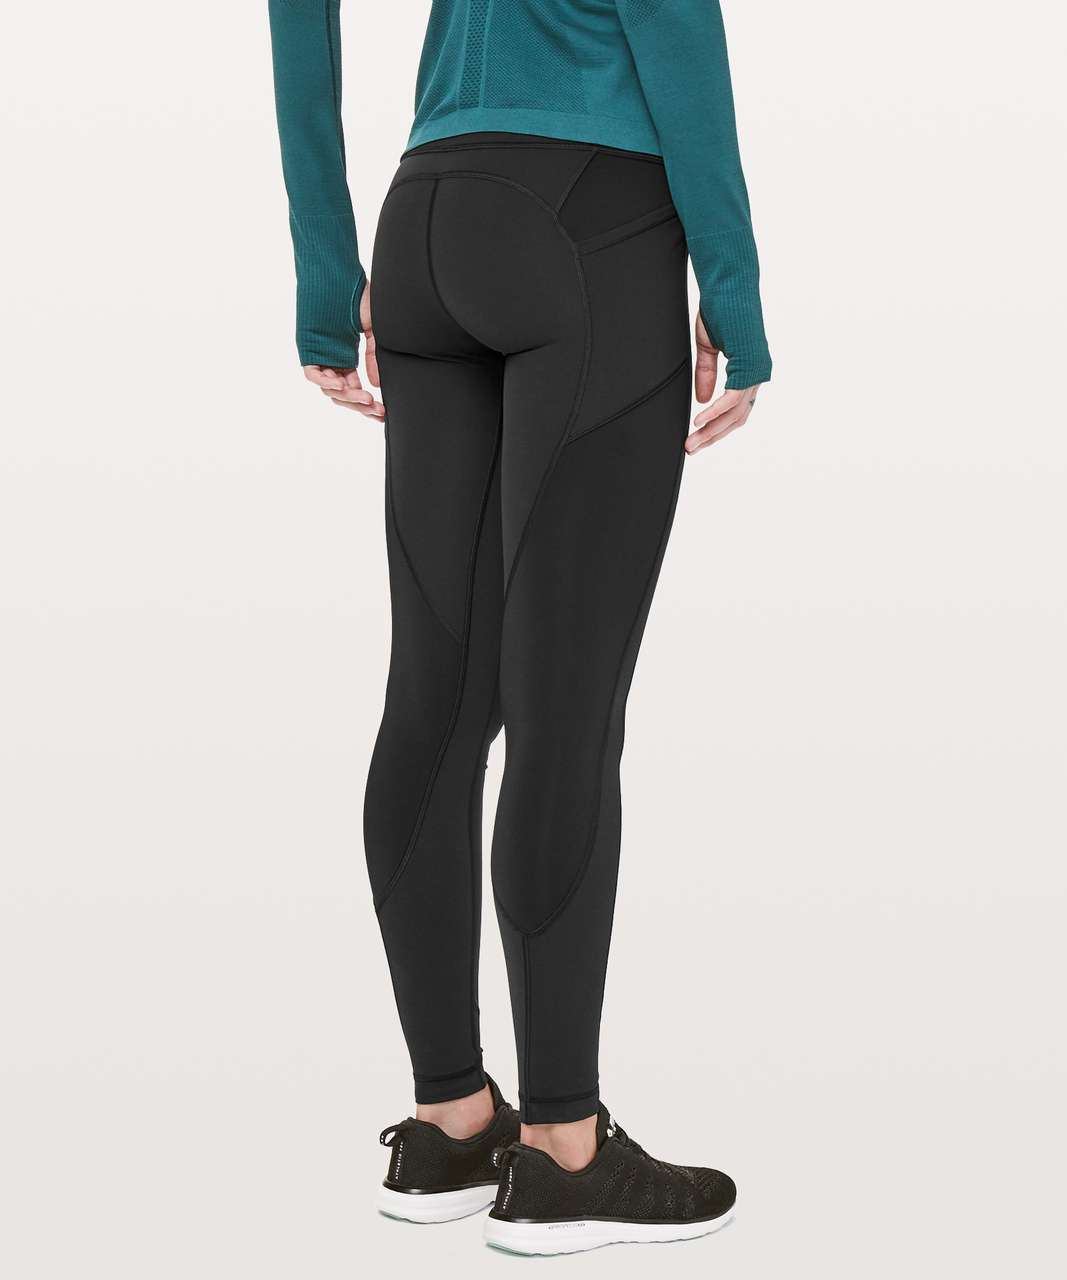 07a4a279c Lululemon All The Right Places Pant II Low Rise  28